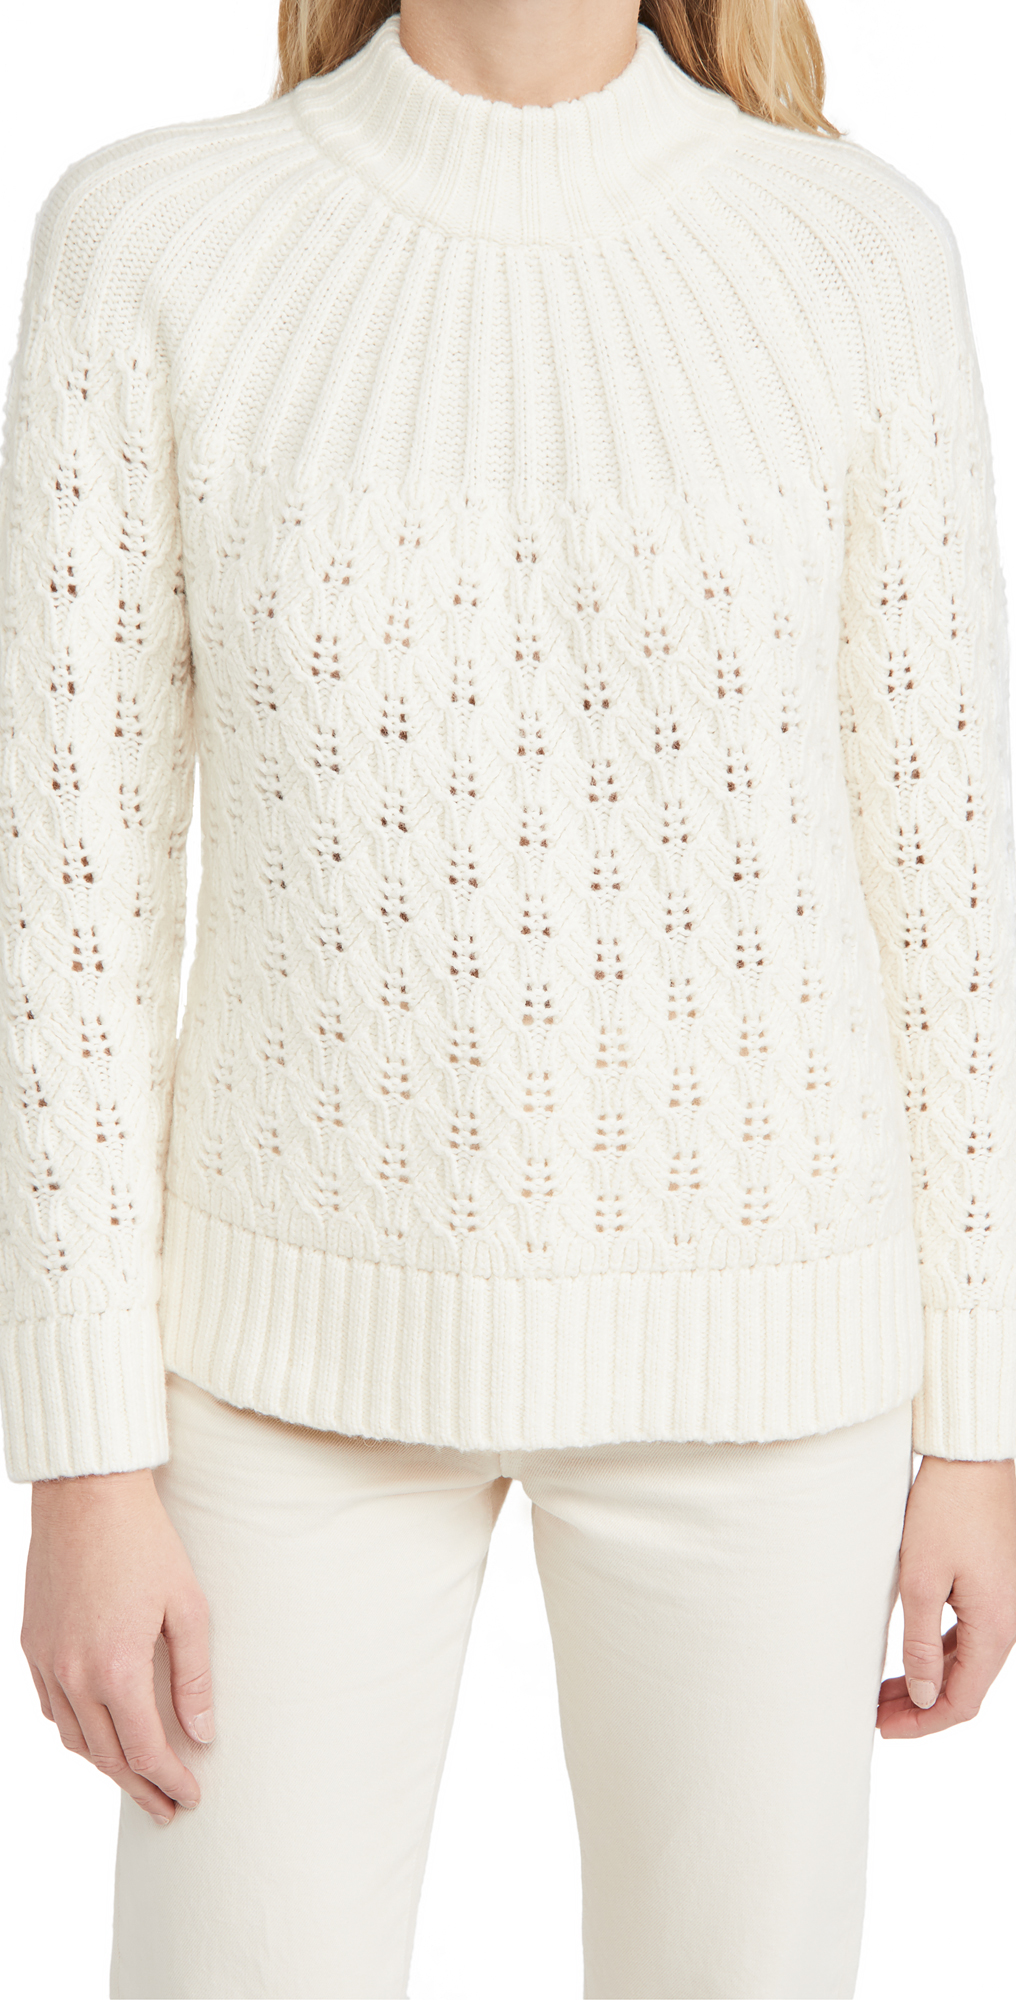 Madewell Pointelle Stitch Mix Mock Neck Sweater